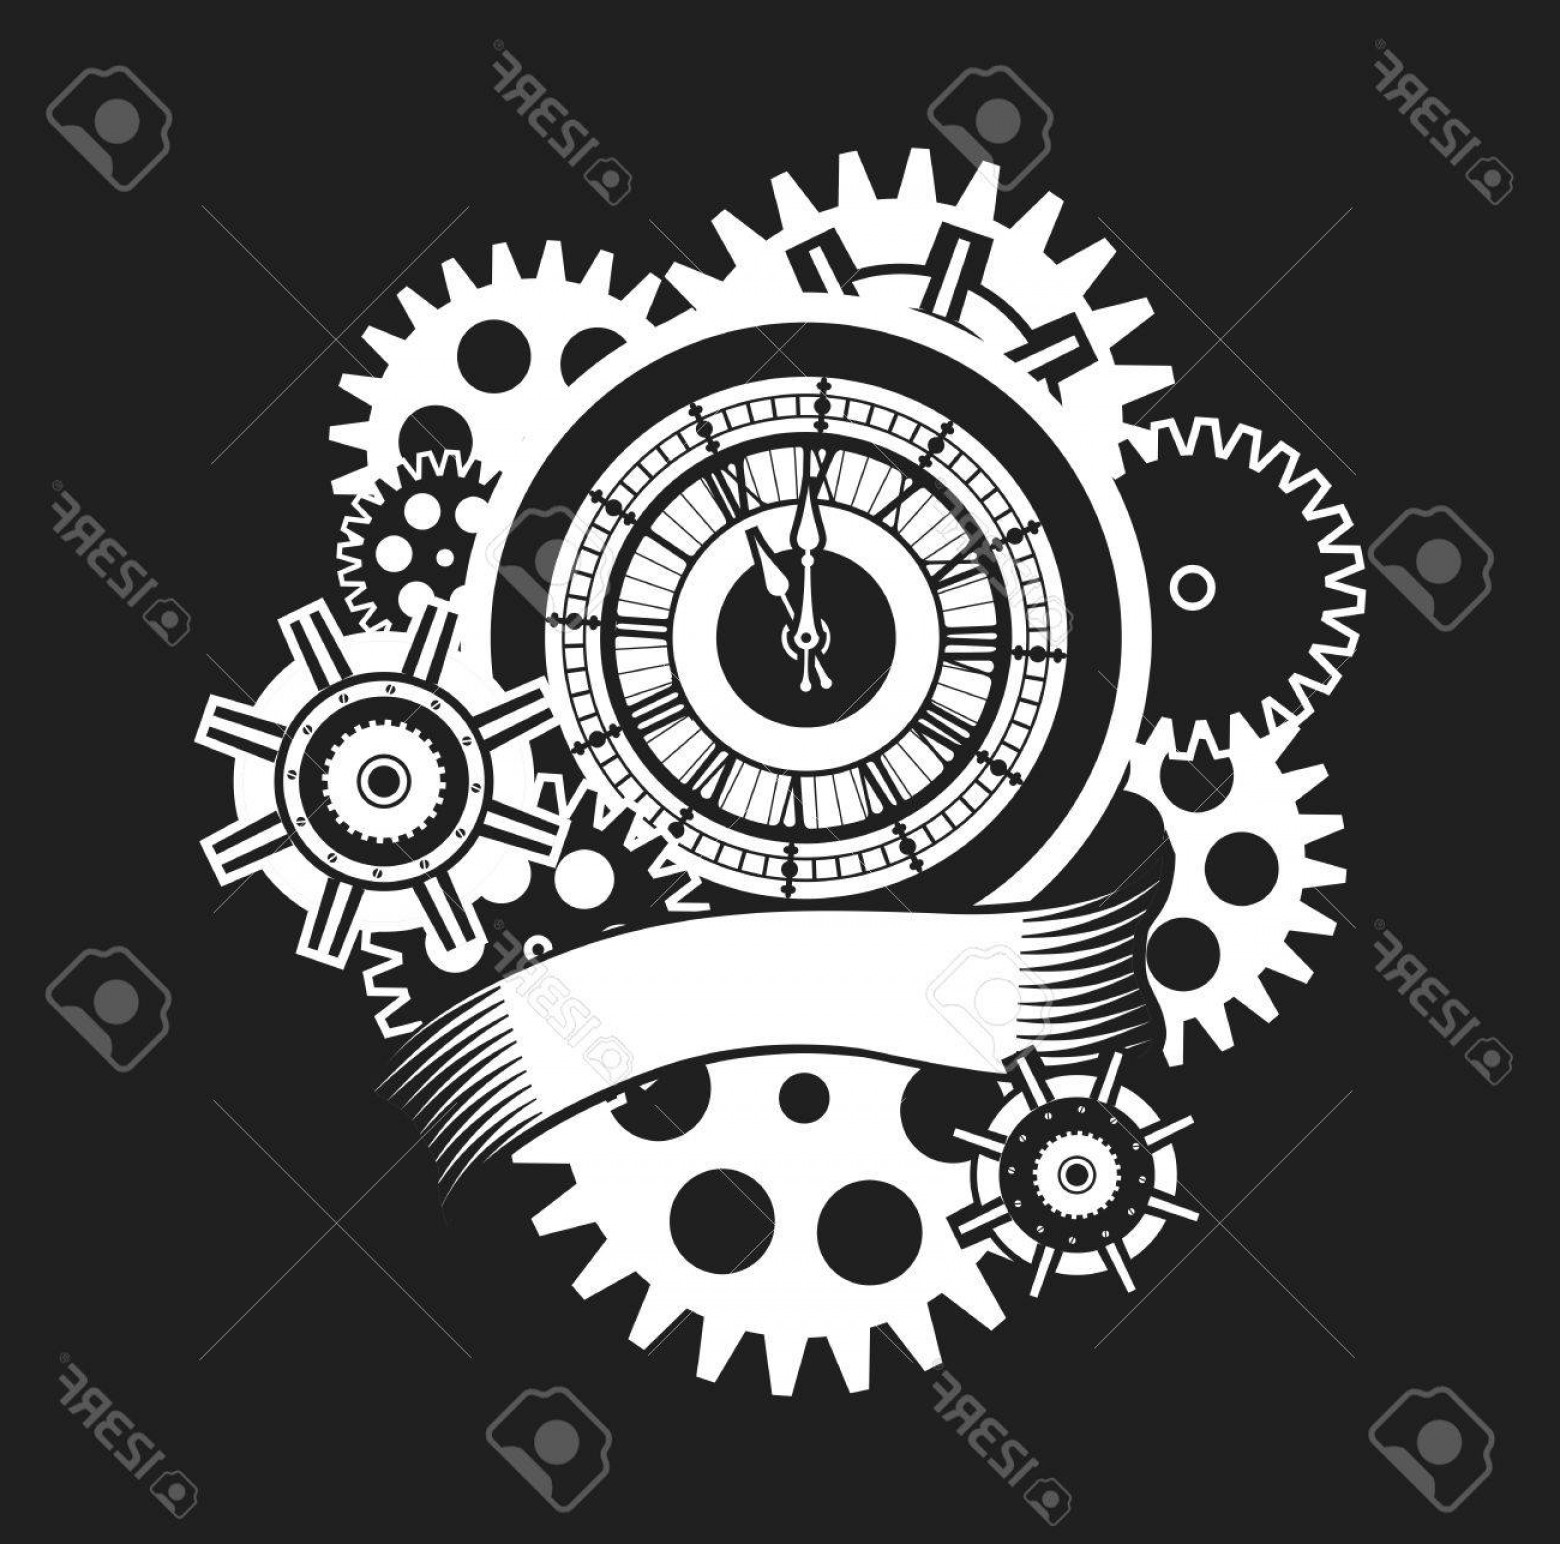 Vector Mechanical Clock Wheels: Photostock Vector Vector Illustration Of A Clock Face Surrounded By Mechanical Parts And Wrap Holiday Banner Black And